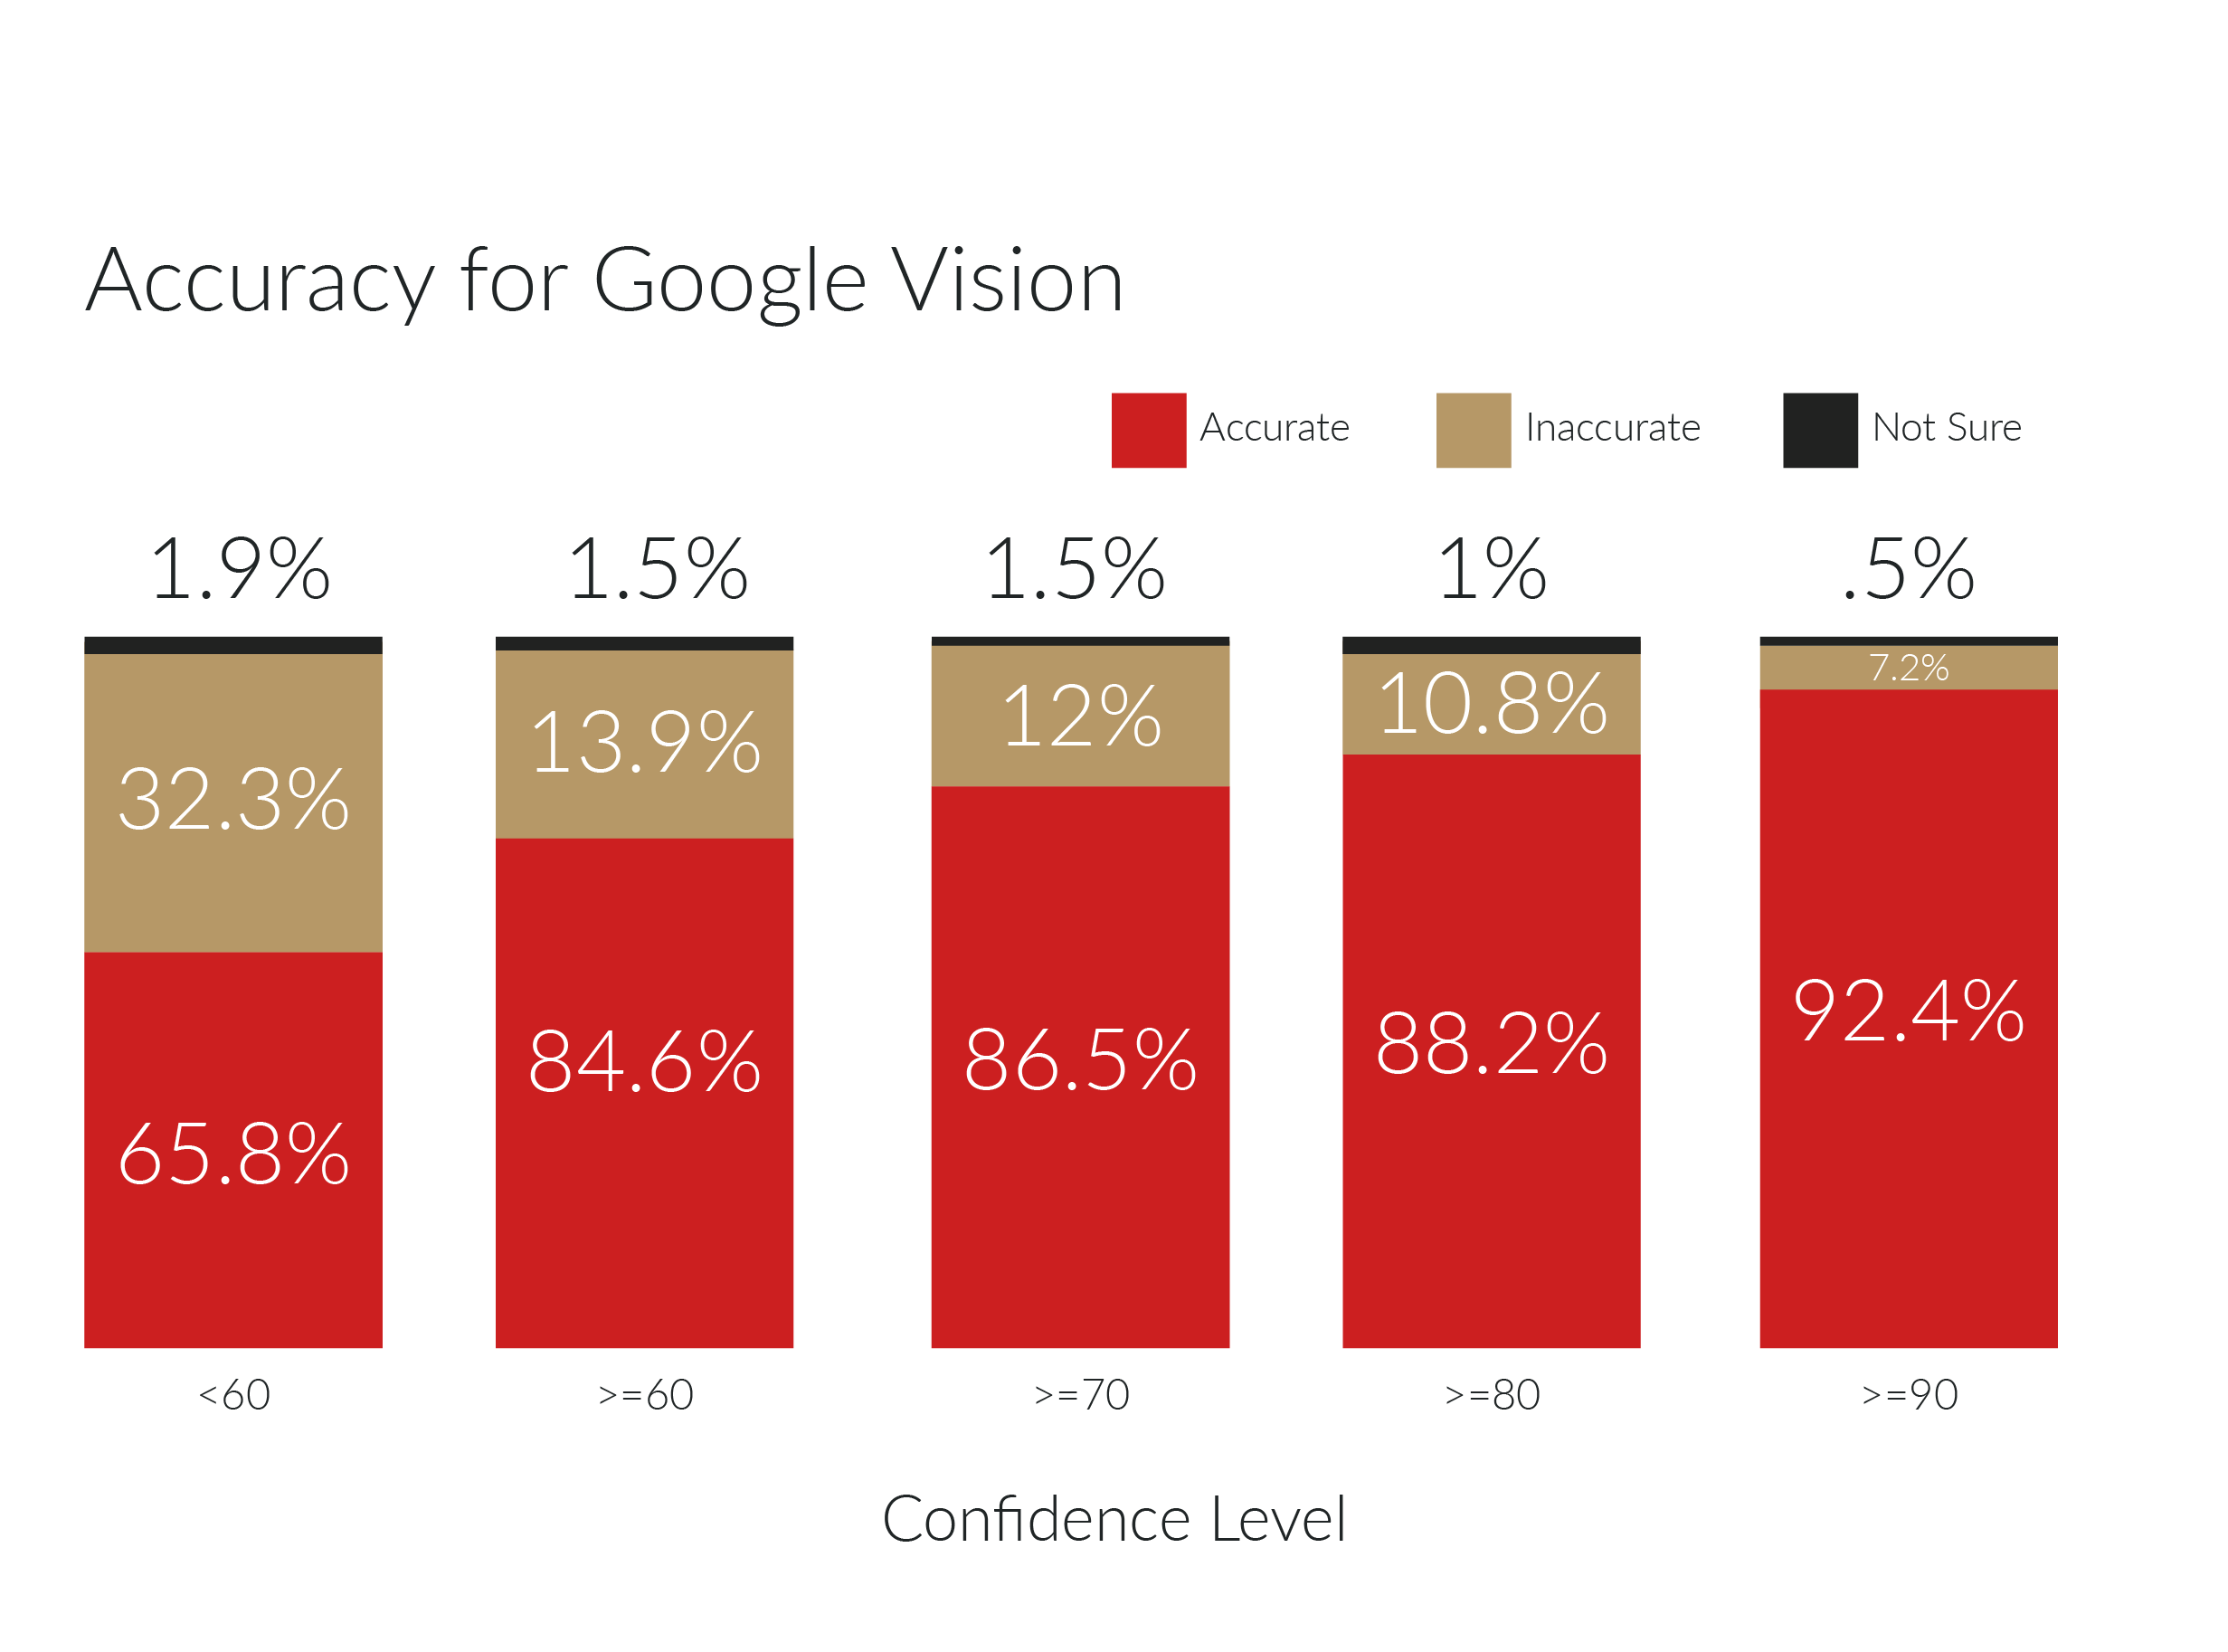 Google Vision accuracy score of returned image tags in percentage by confidence level.